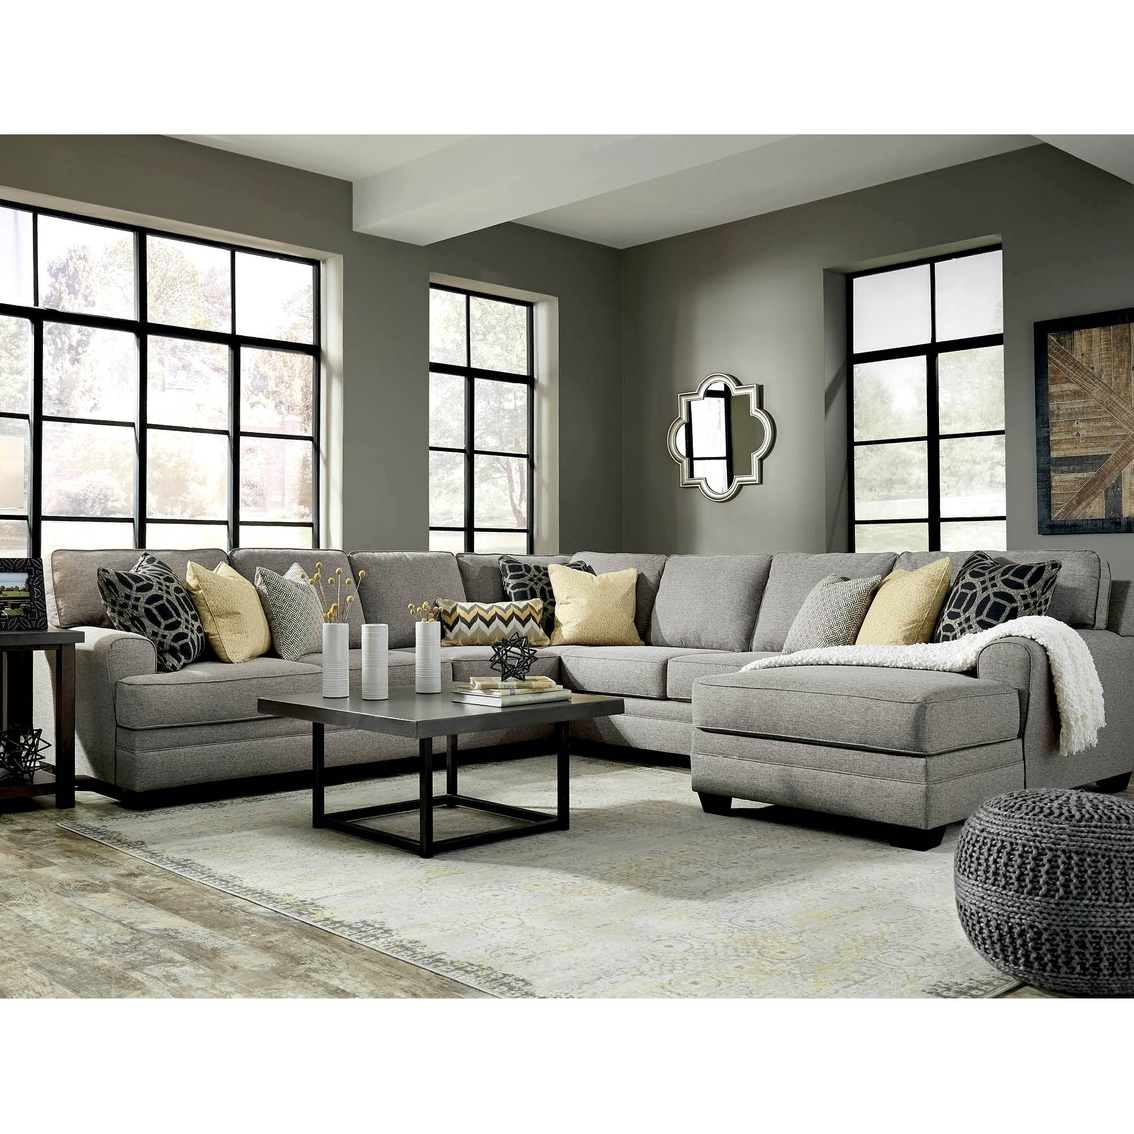 Benchcraft Cresson 4 Pc. Sectional Raf Corner Chaise/laf ...